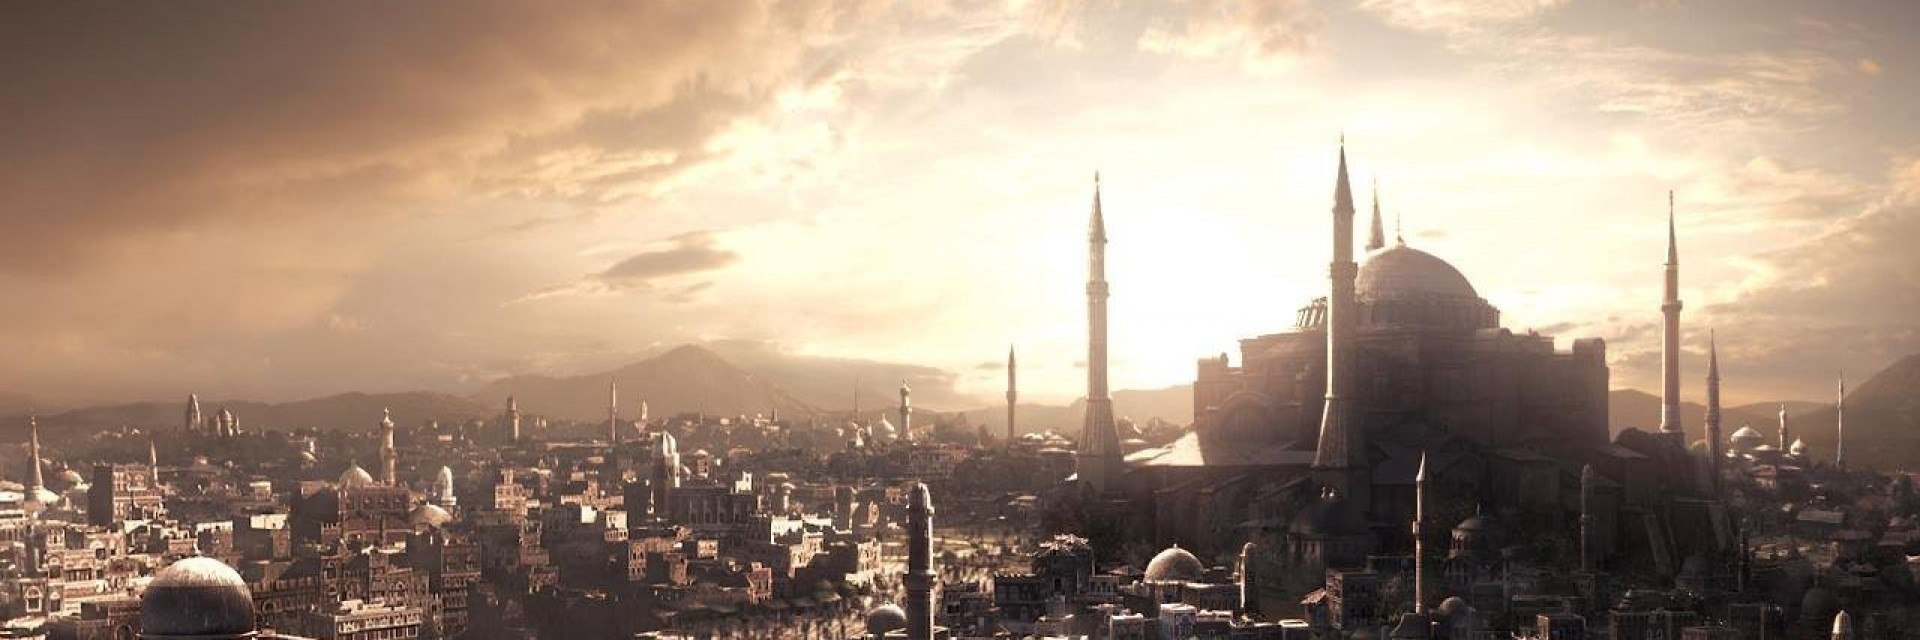 A screenshot from the video game Civilization depicting a medieval middle eastern city with a dome with 4 towering minarets in the distance